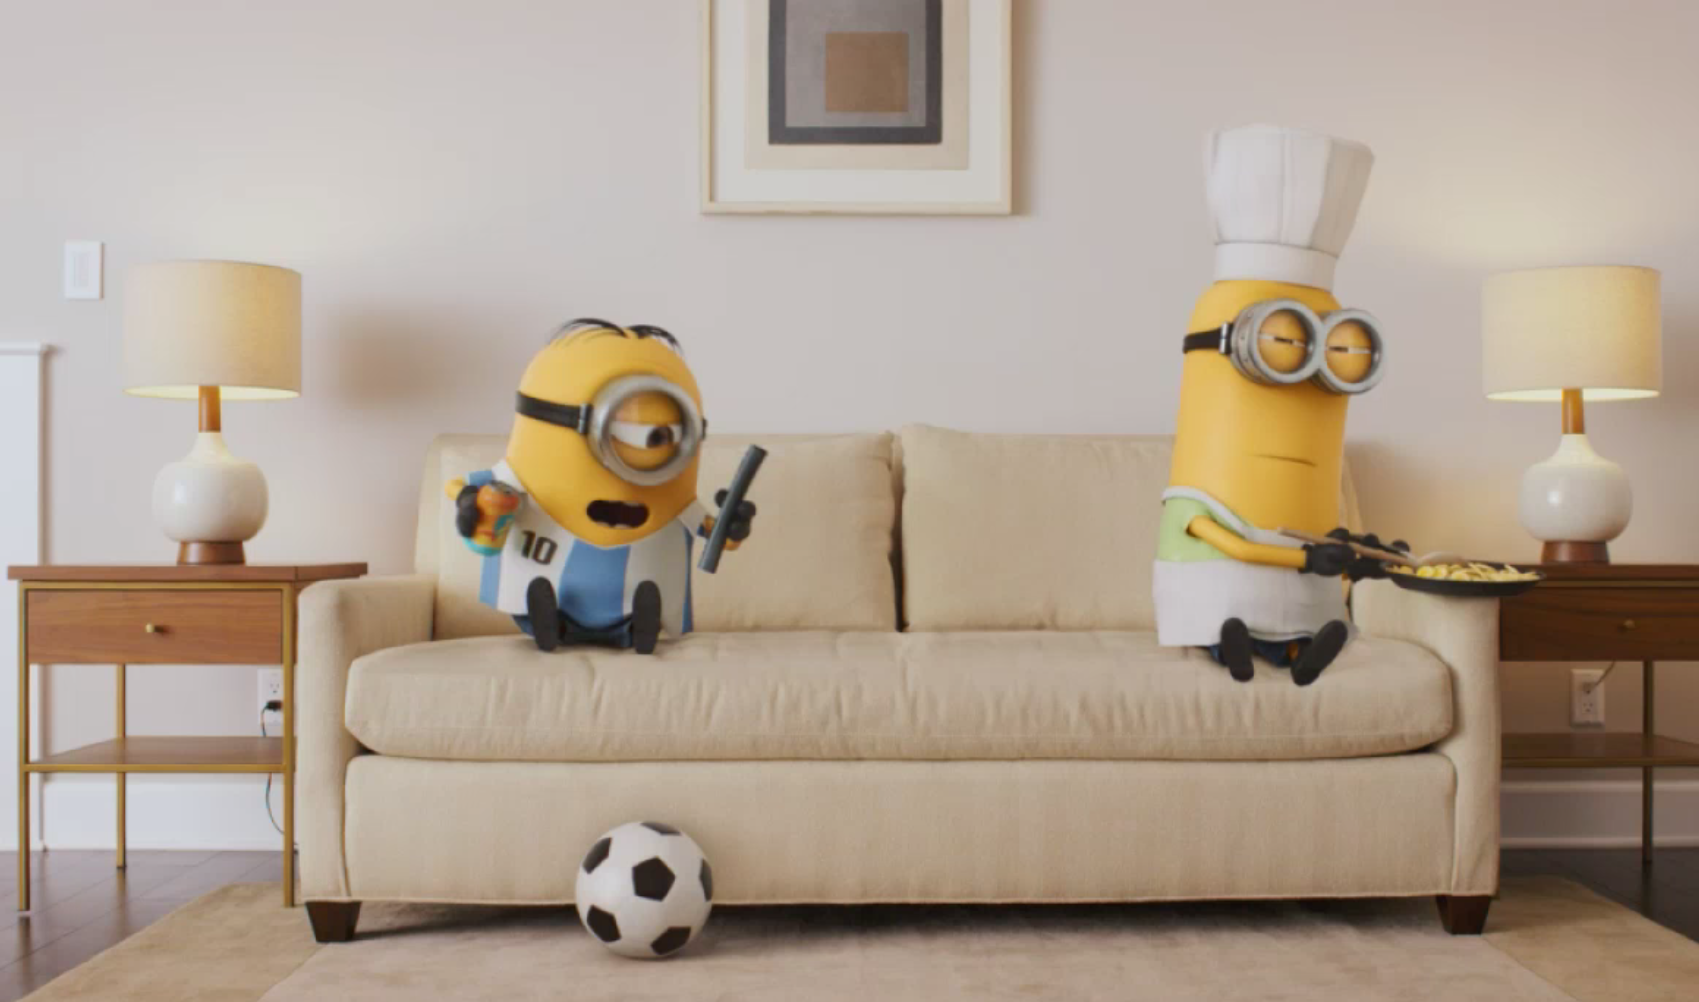 Comcast's New Remote Control Now Advertises Comcast-Distributed Kids Movie